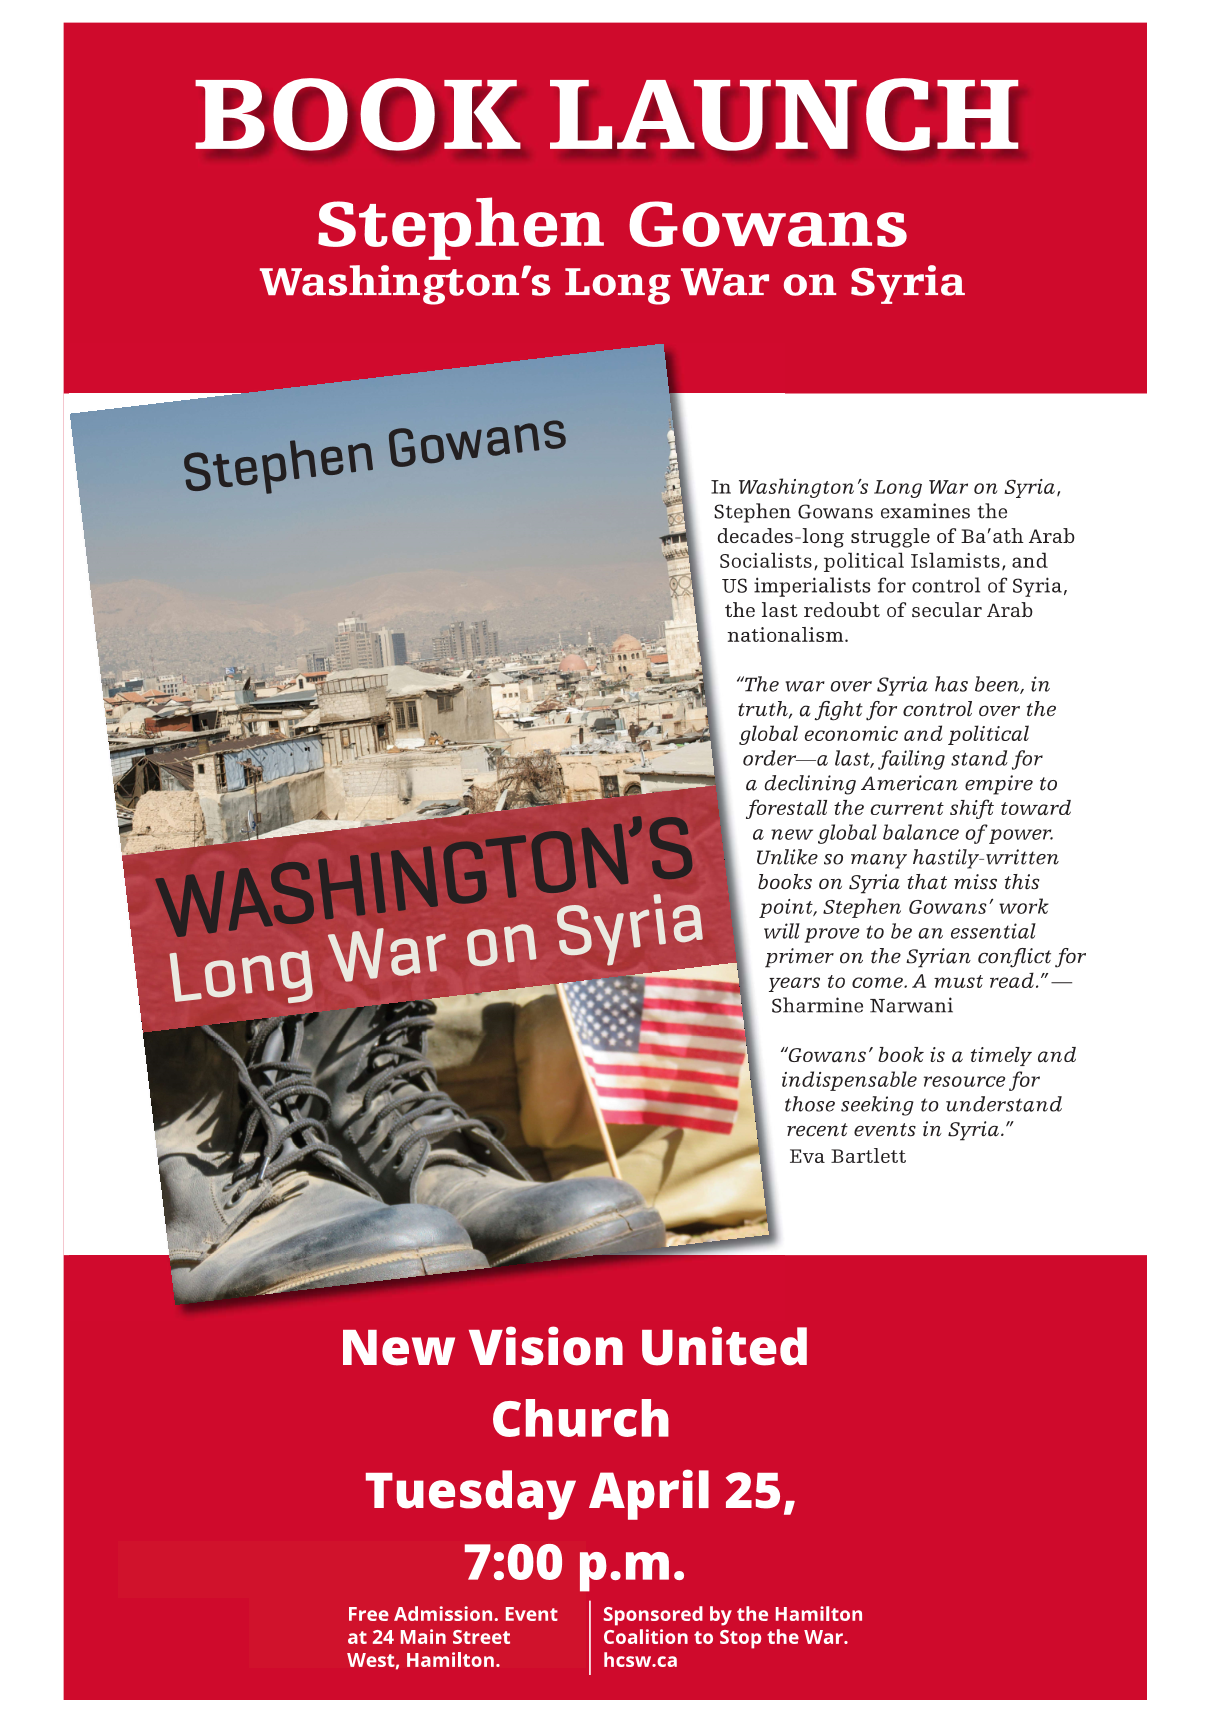 Poster for Washington's Long War on Syria